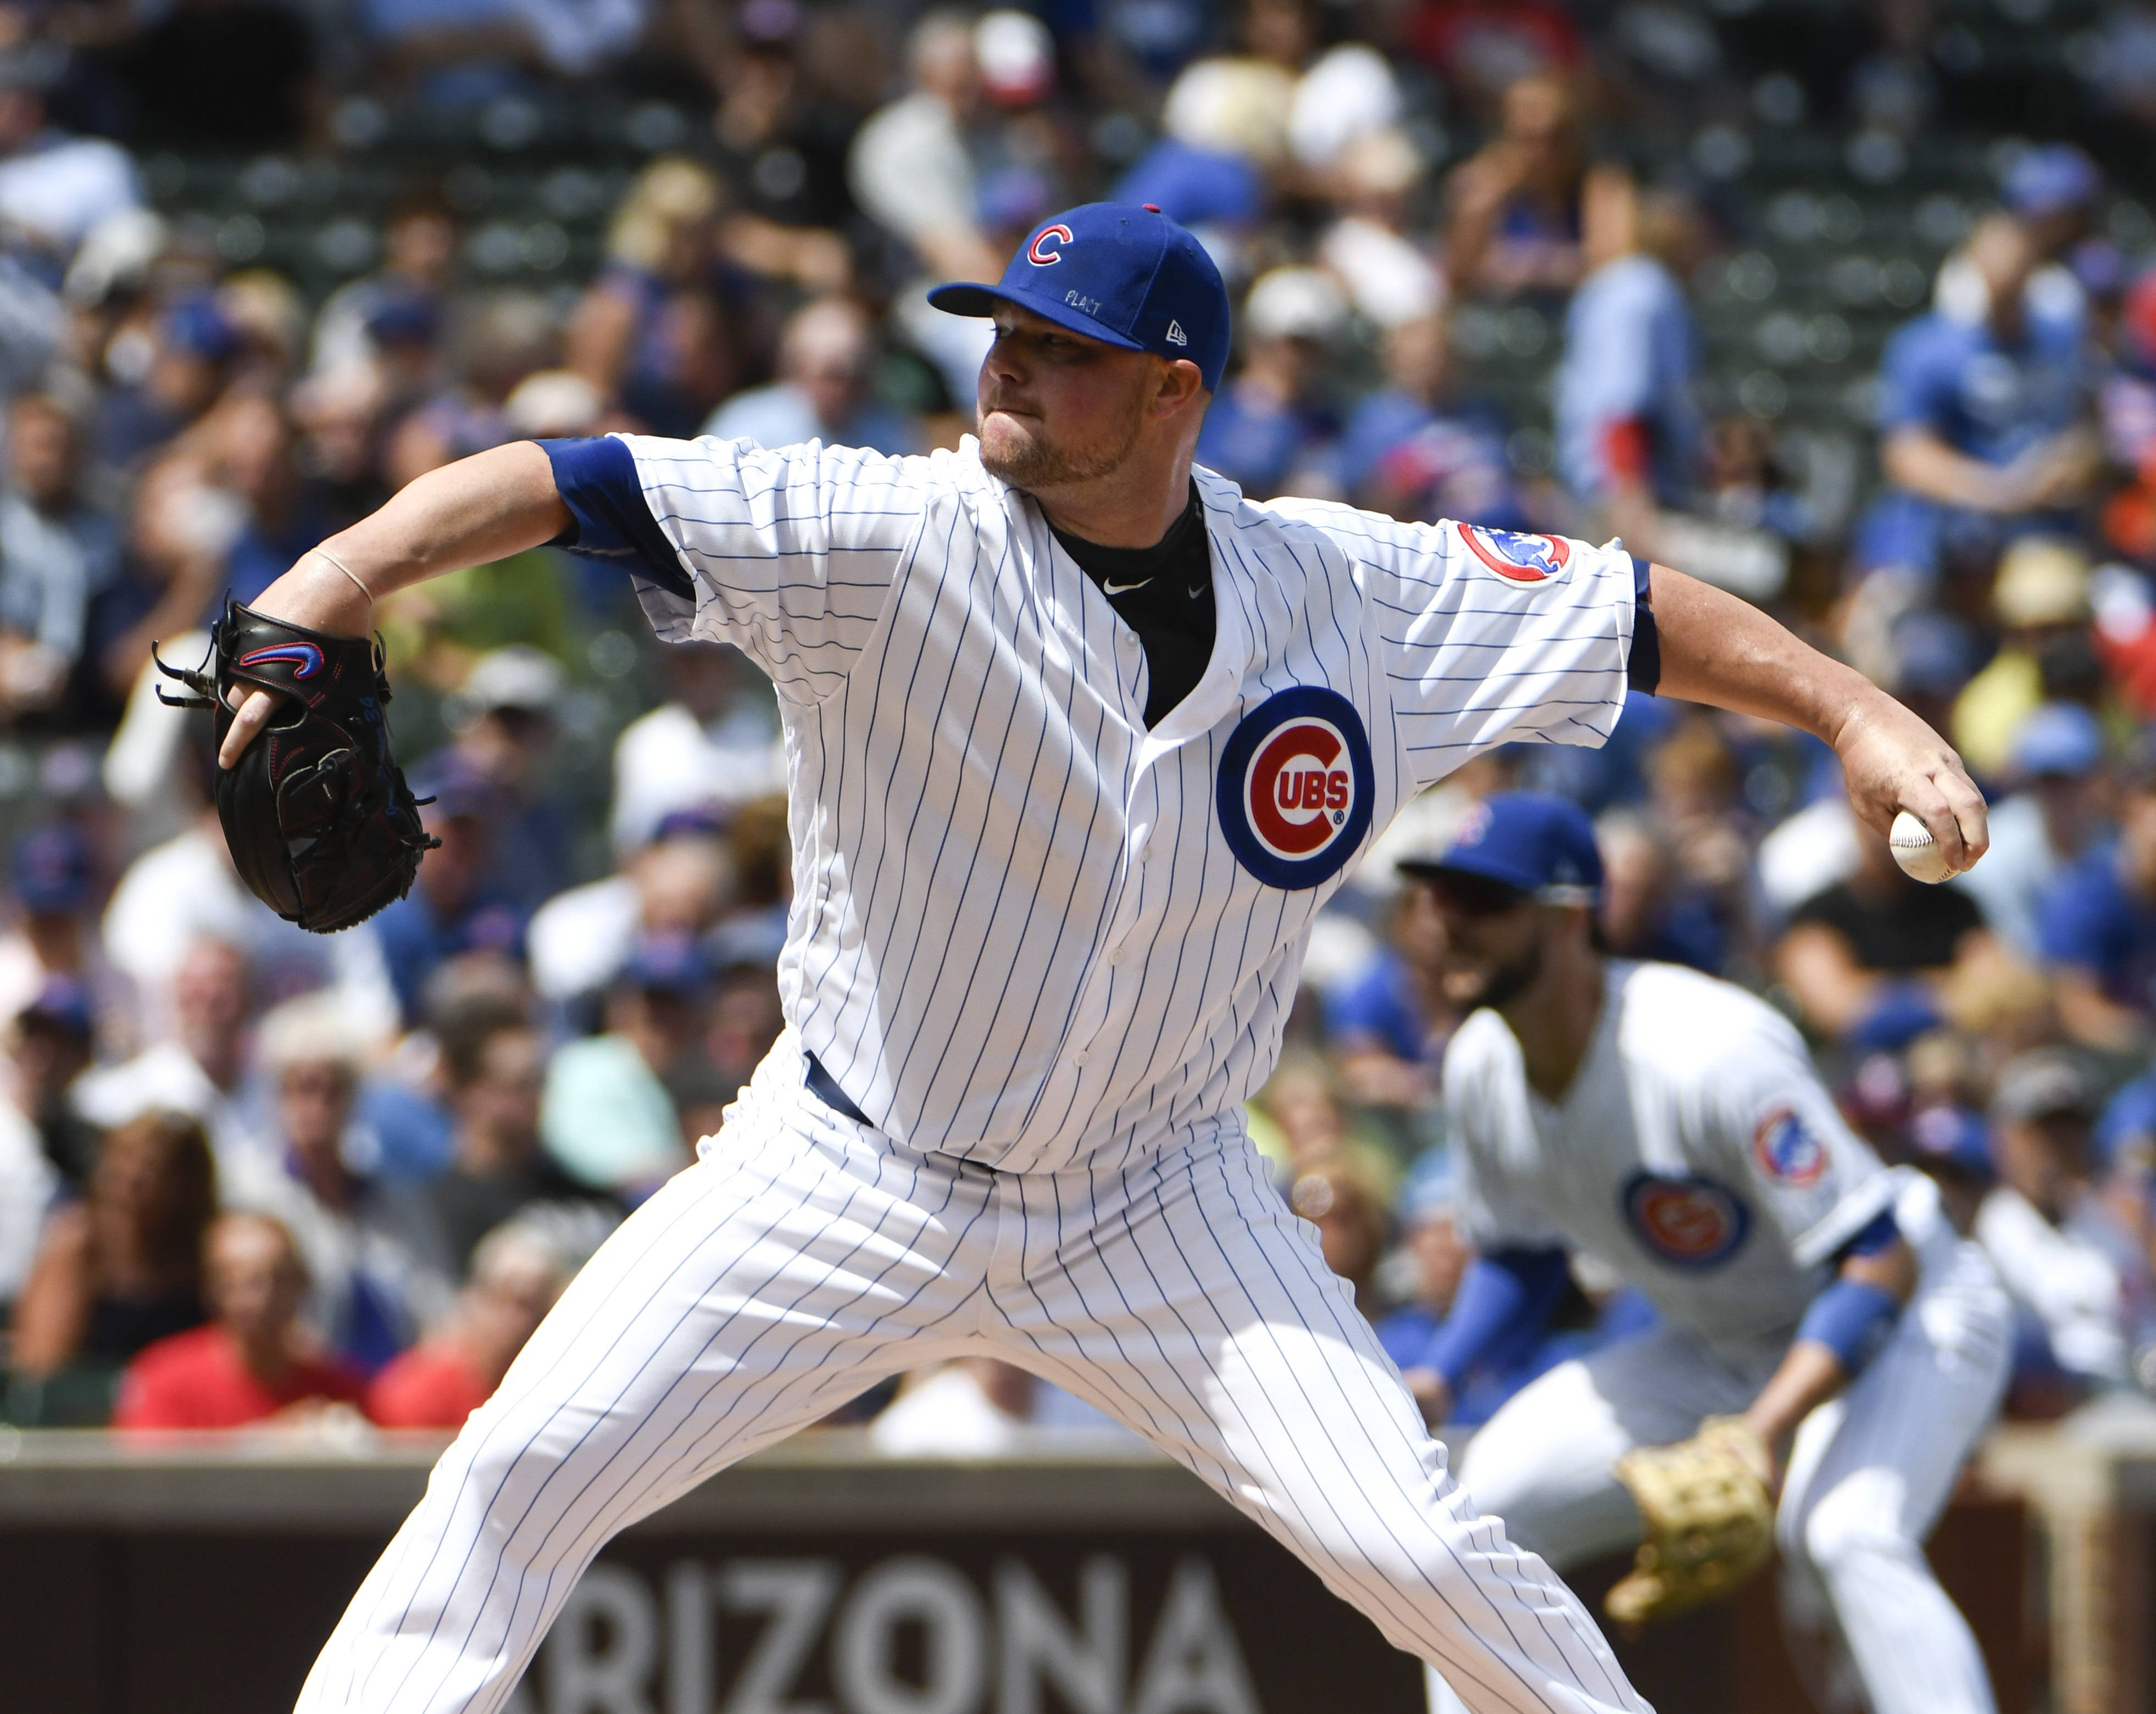 Chicago Cubs starting pitcher Jon Lester will go on the 10-day disabled list due to a lat strain and arm fatigue.